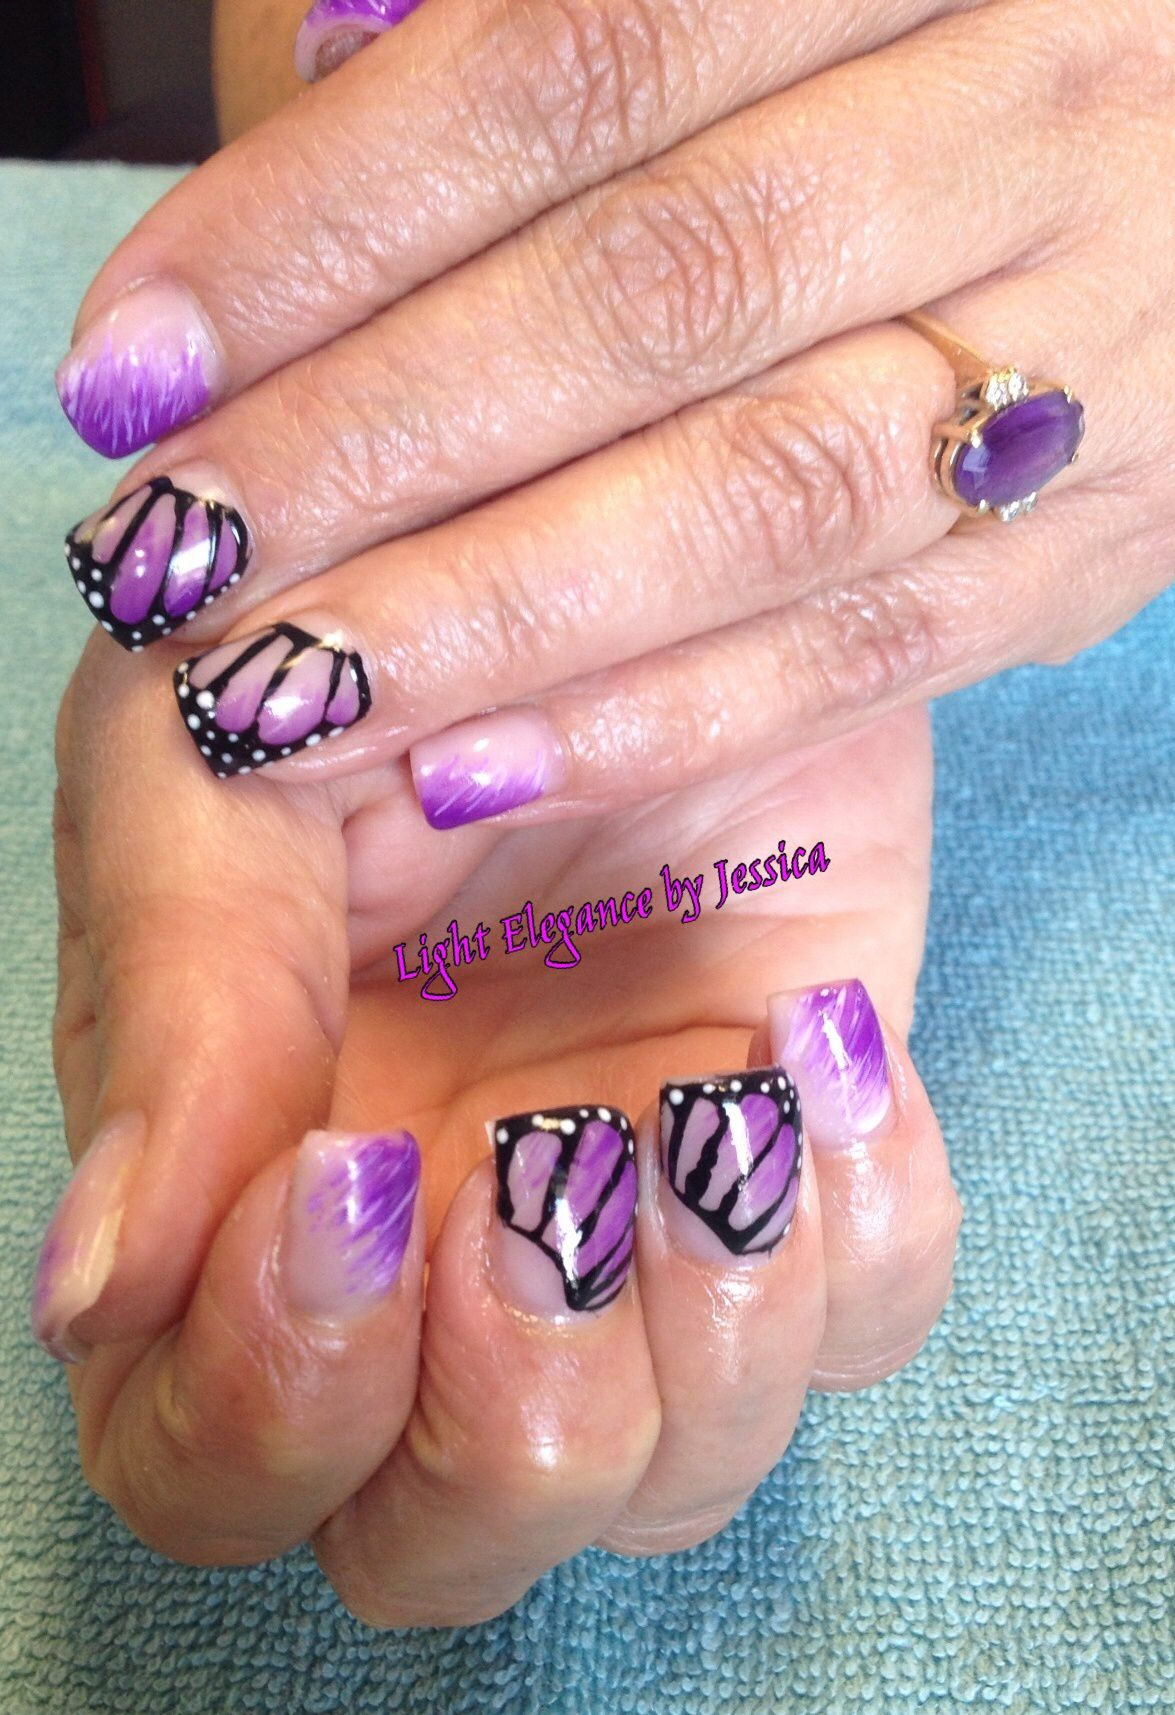 Light Elegance Gel Nails by Jessica in Salem Oregon. Purple and nude ...